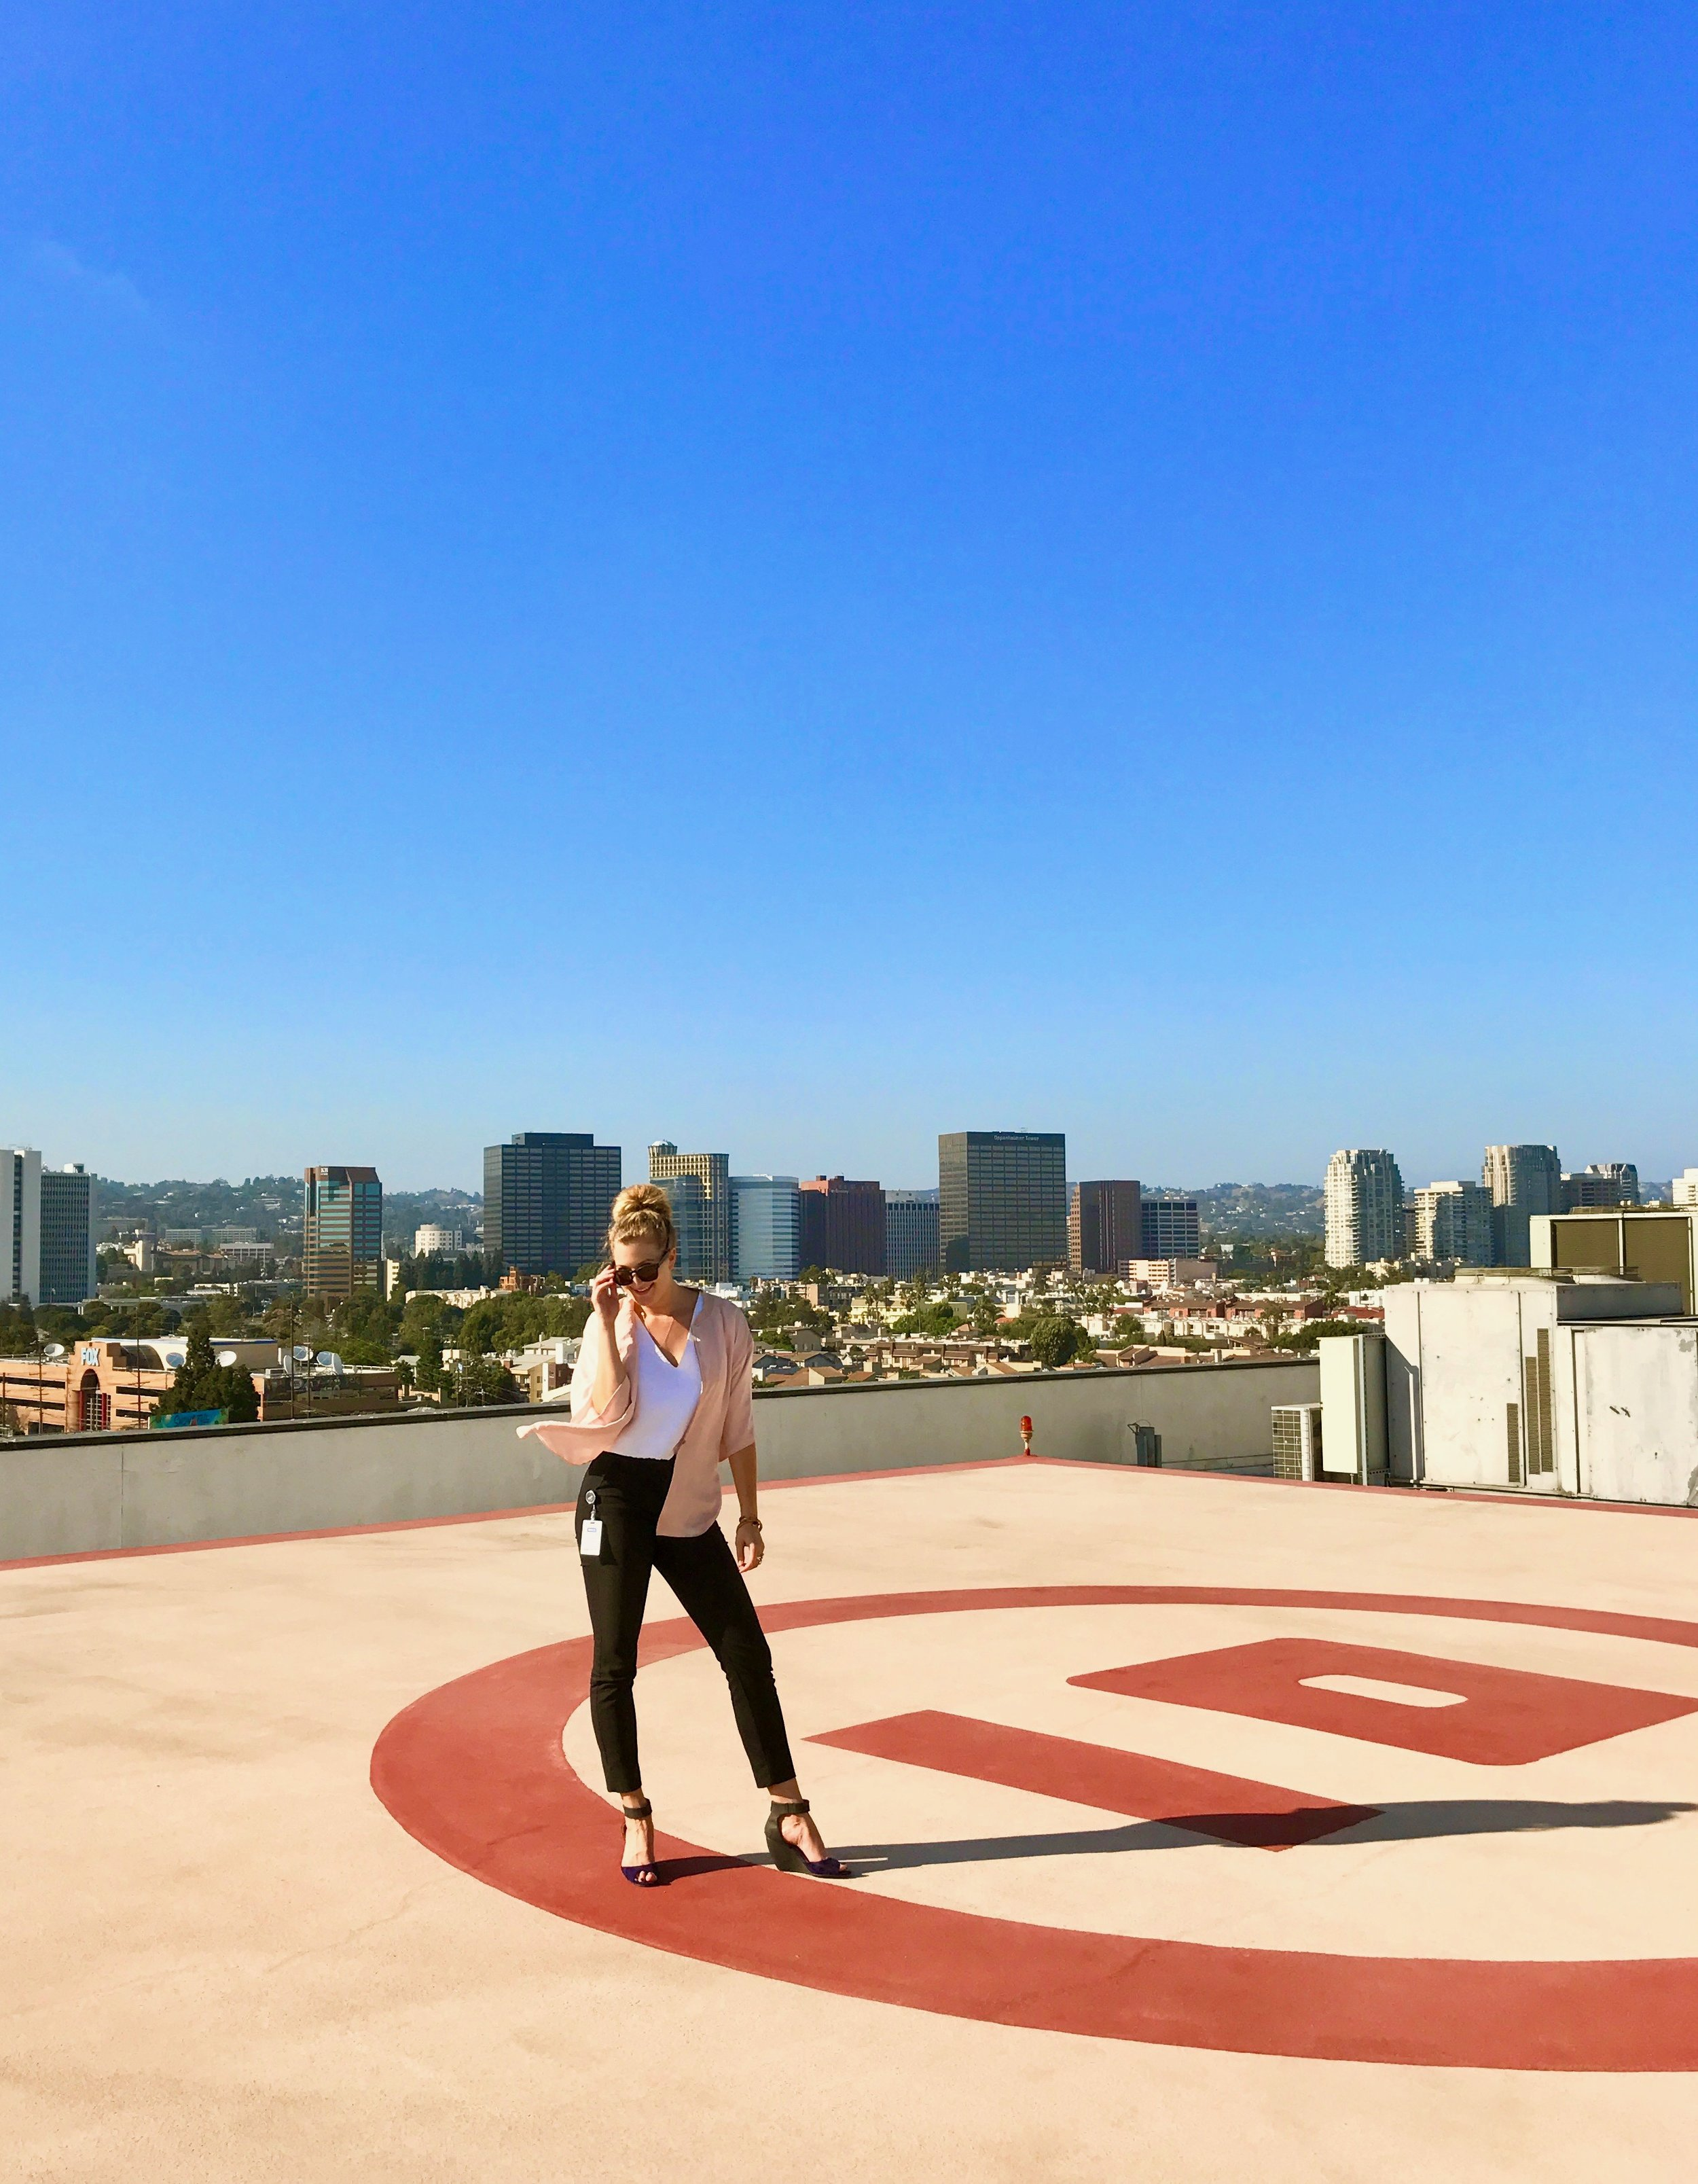 Impromptu photoshoot atop the PMC helipad. A final wave goodbye to my life in Los Angeles.